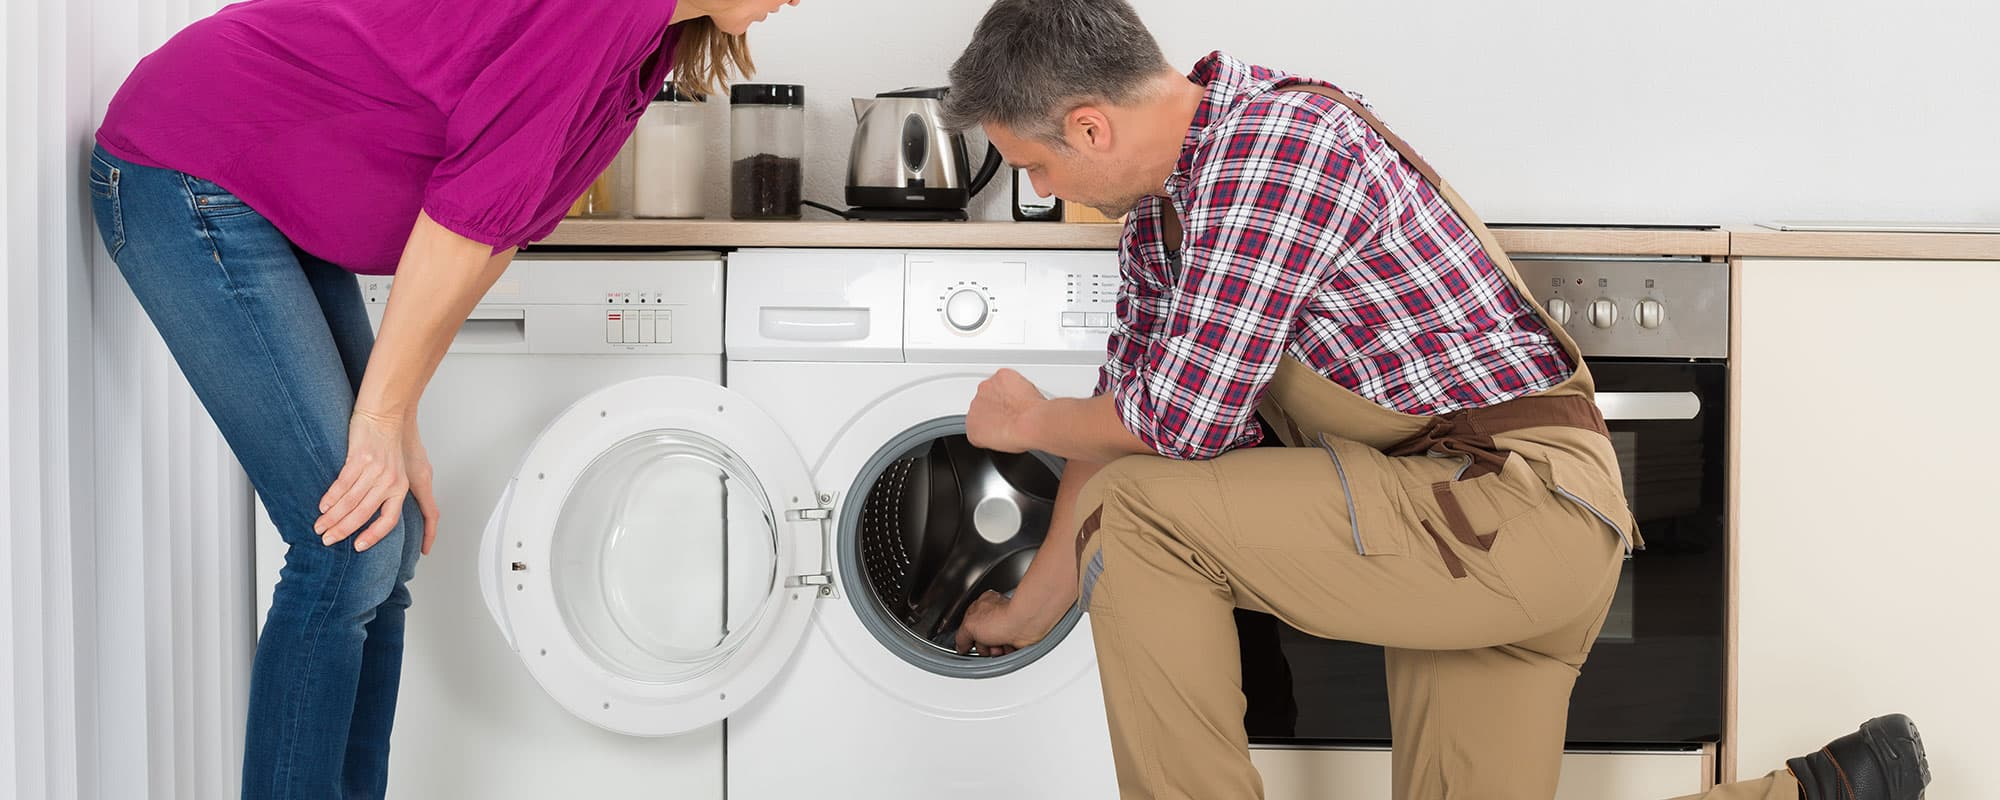 Woman Looking At Repairman Checking Washing Machine In Kitchen